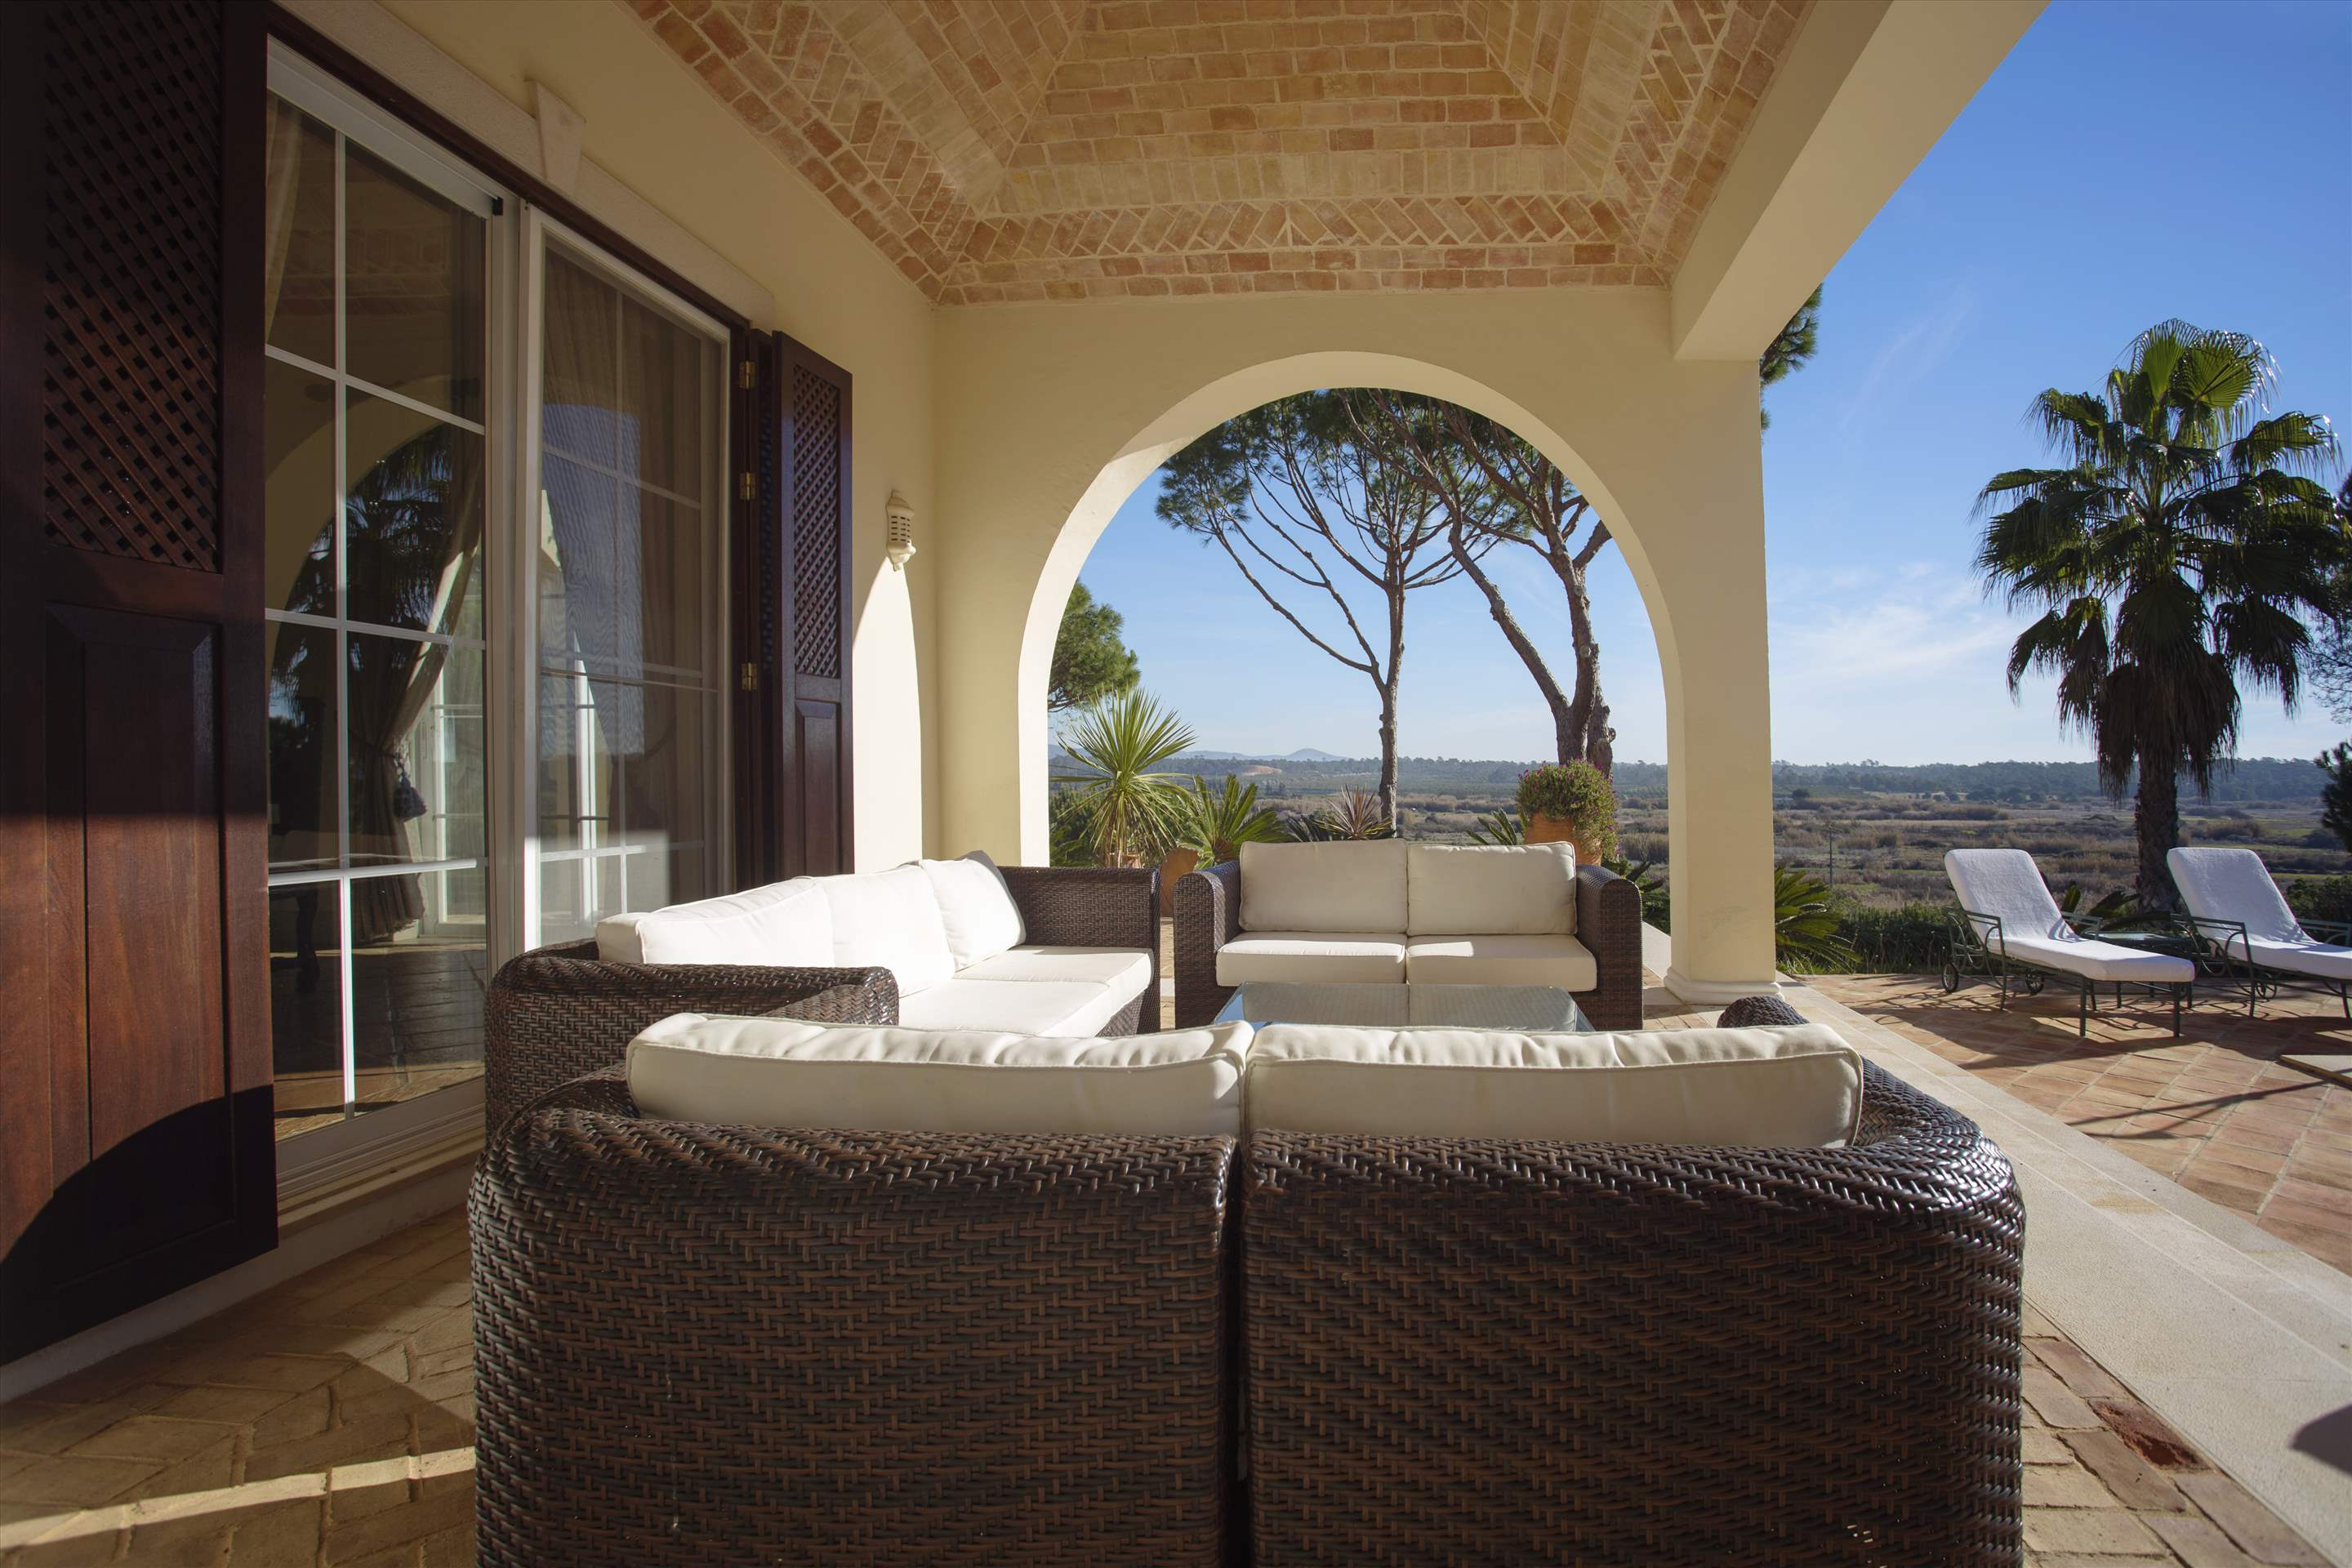 Villa Palmeiras Altas, 5 bedroom villa in Quinta do Lago, Algarve Photo #12